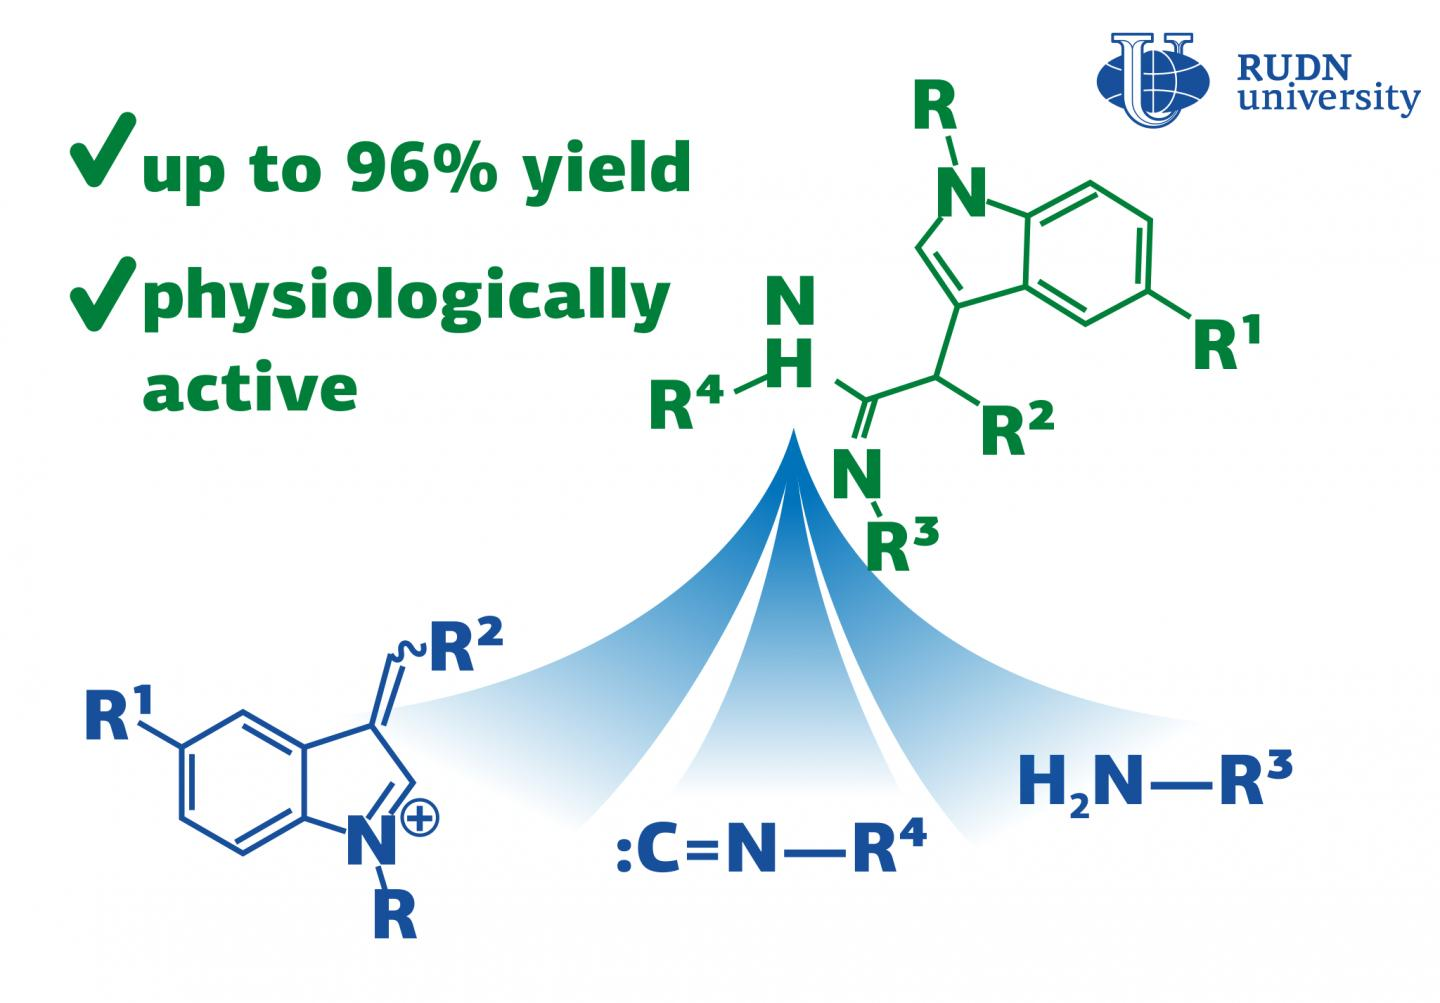 RUDN University Chemists Obtained an Unusual Planar Nickel complex exhibiting Magnetic Properties